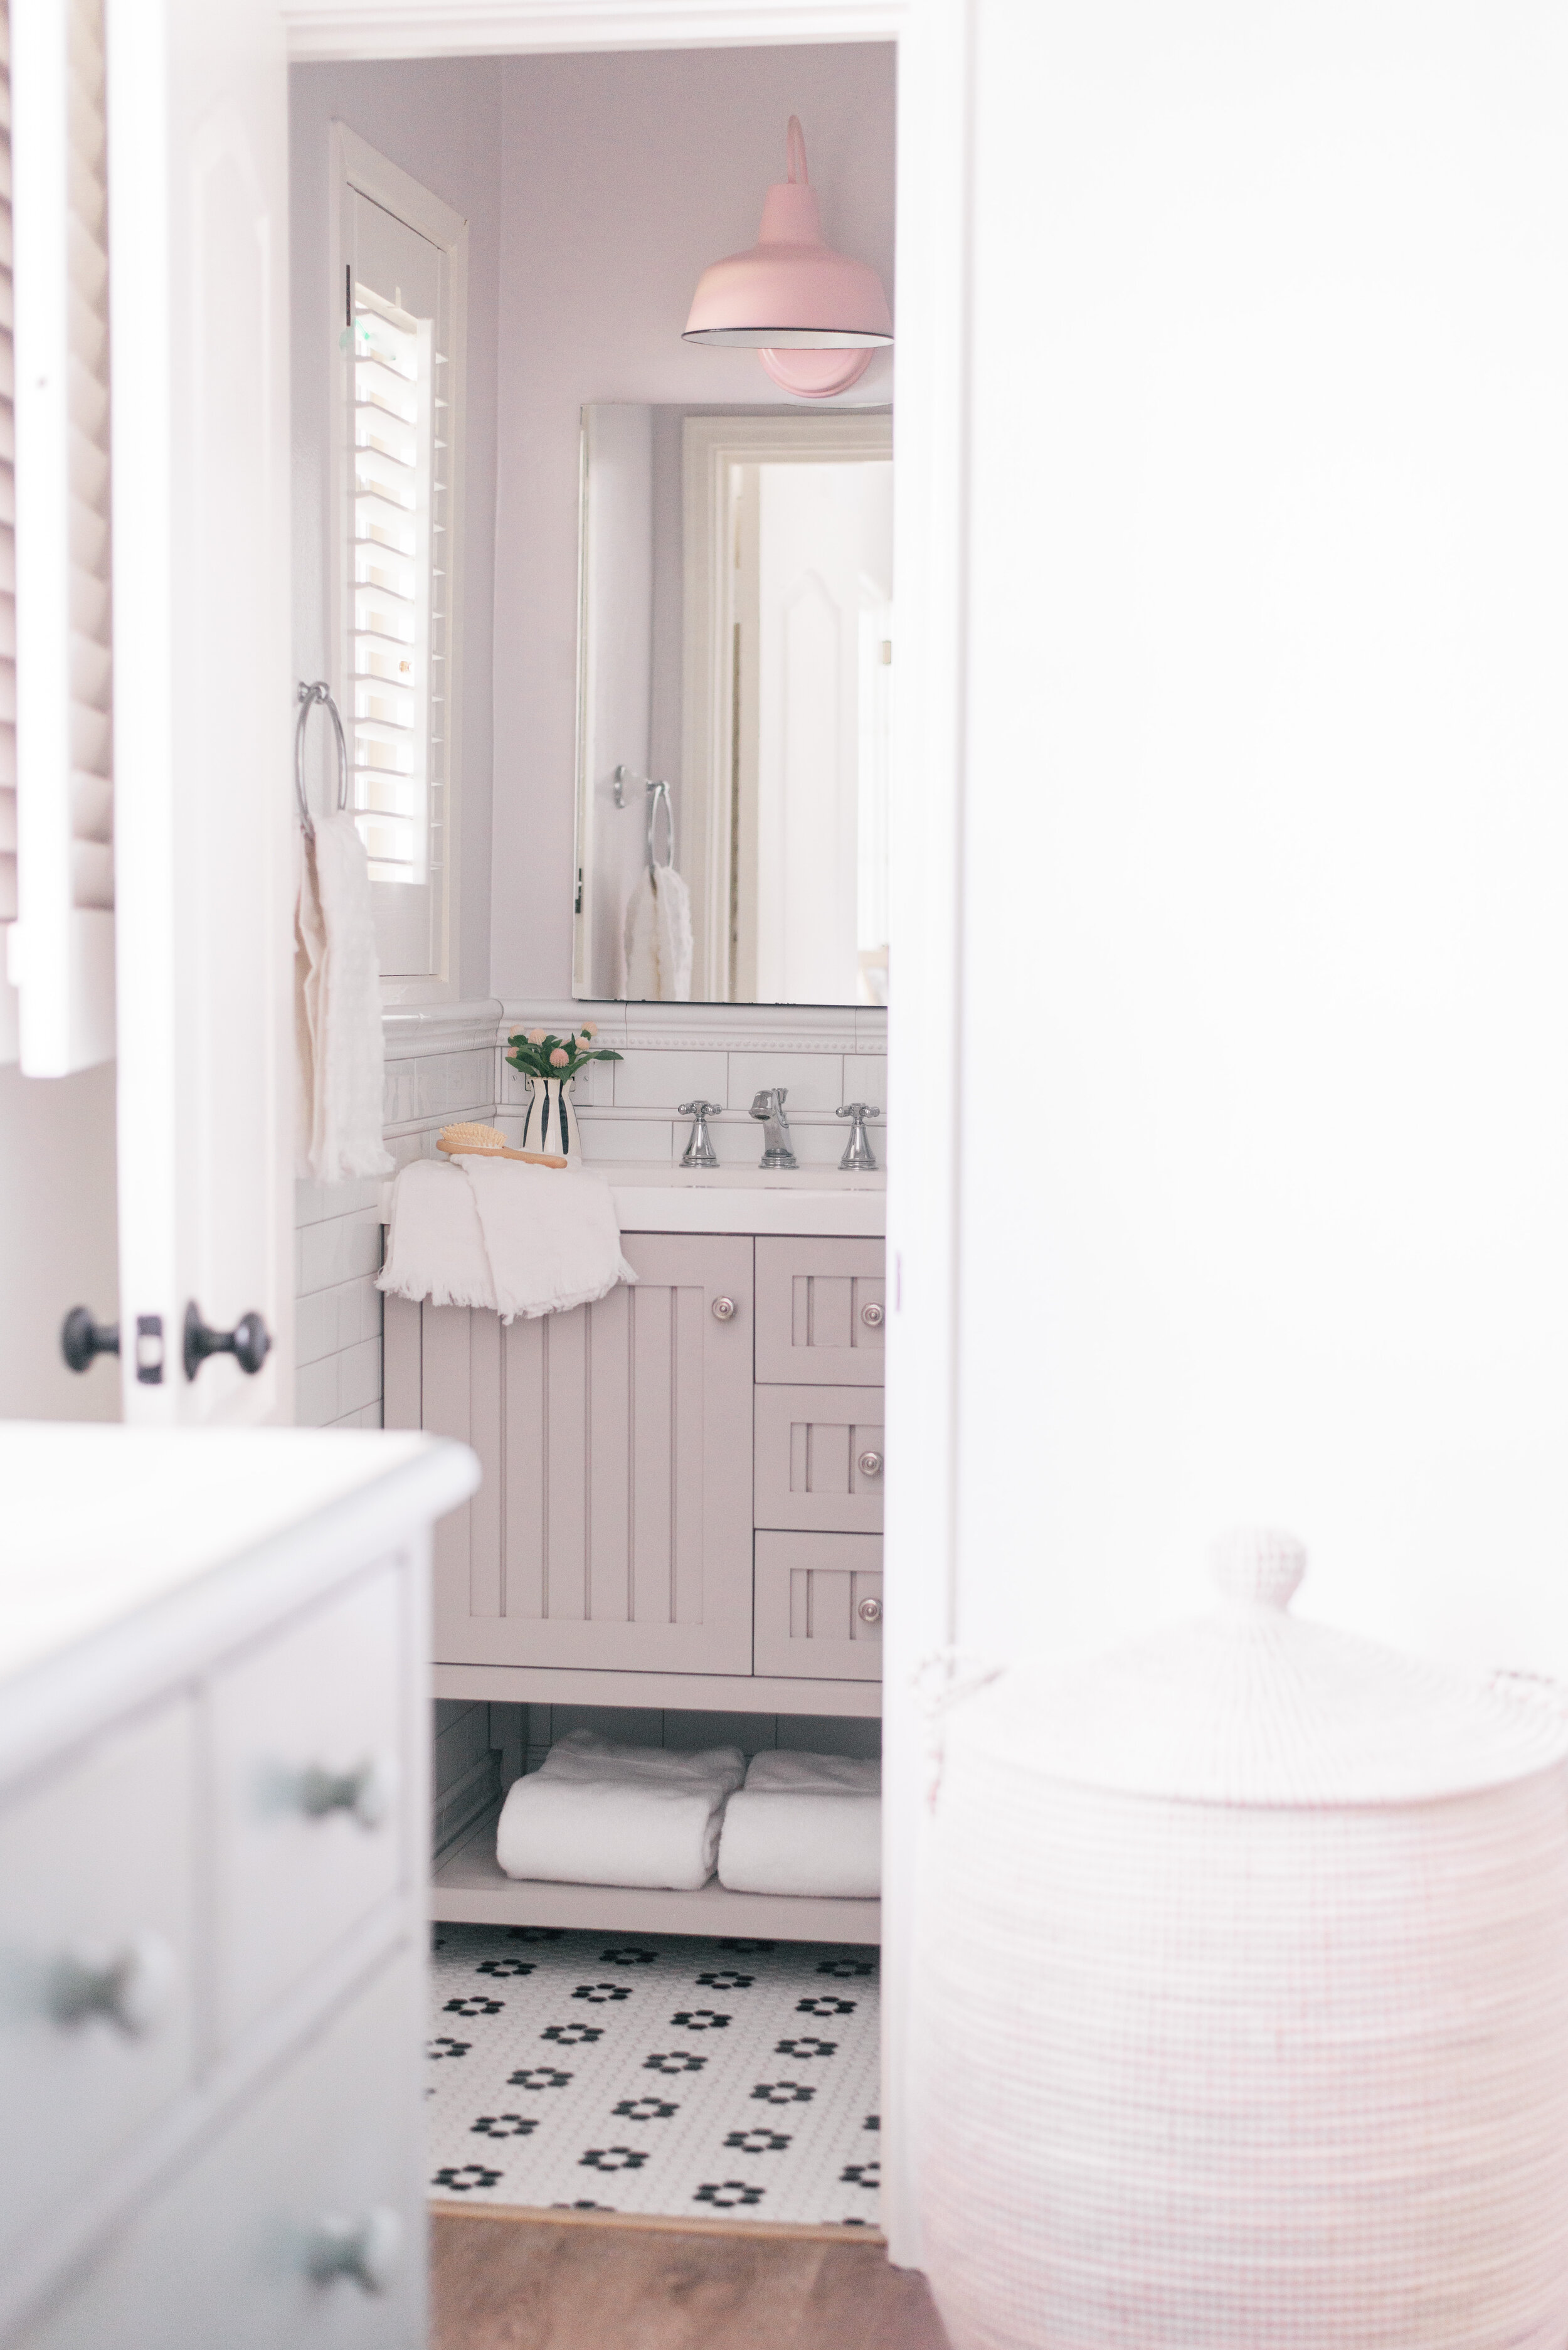 Our Small Master Bathroom Remodel Ideas Decor Sources